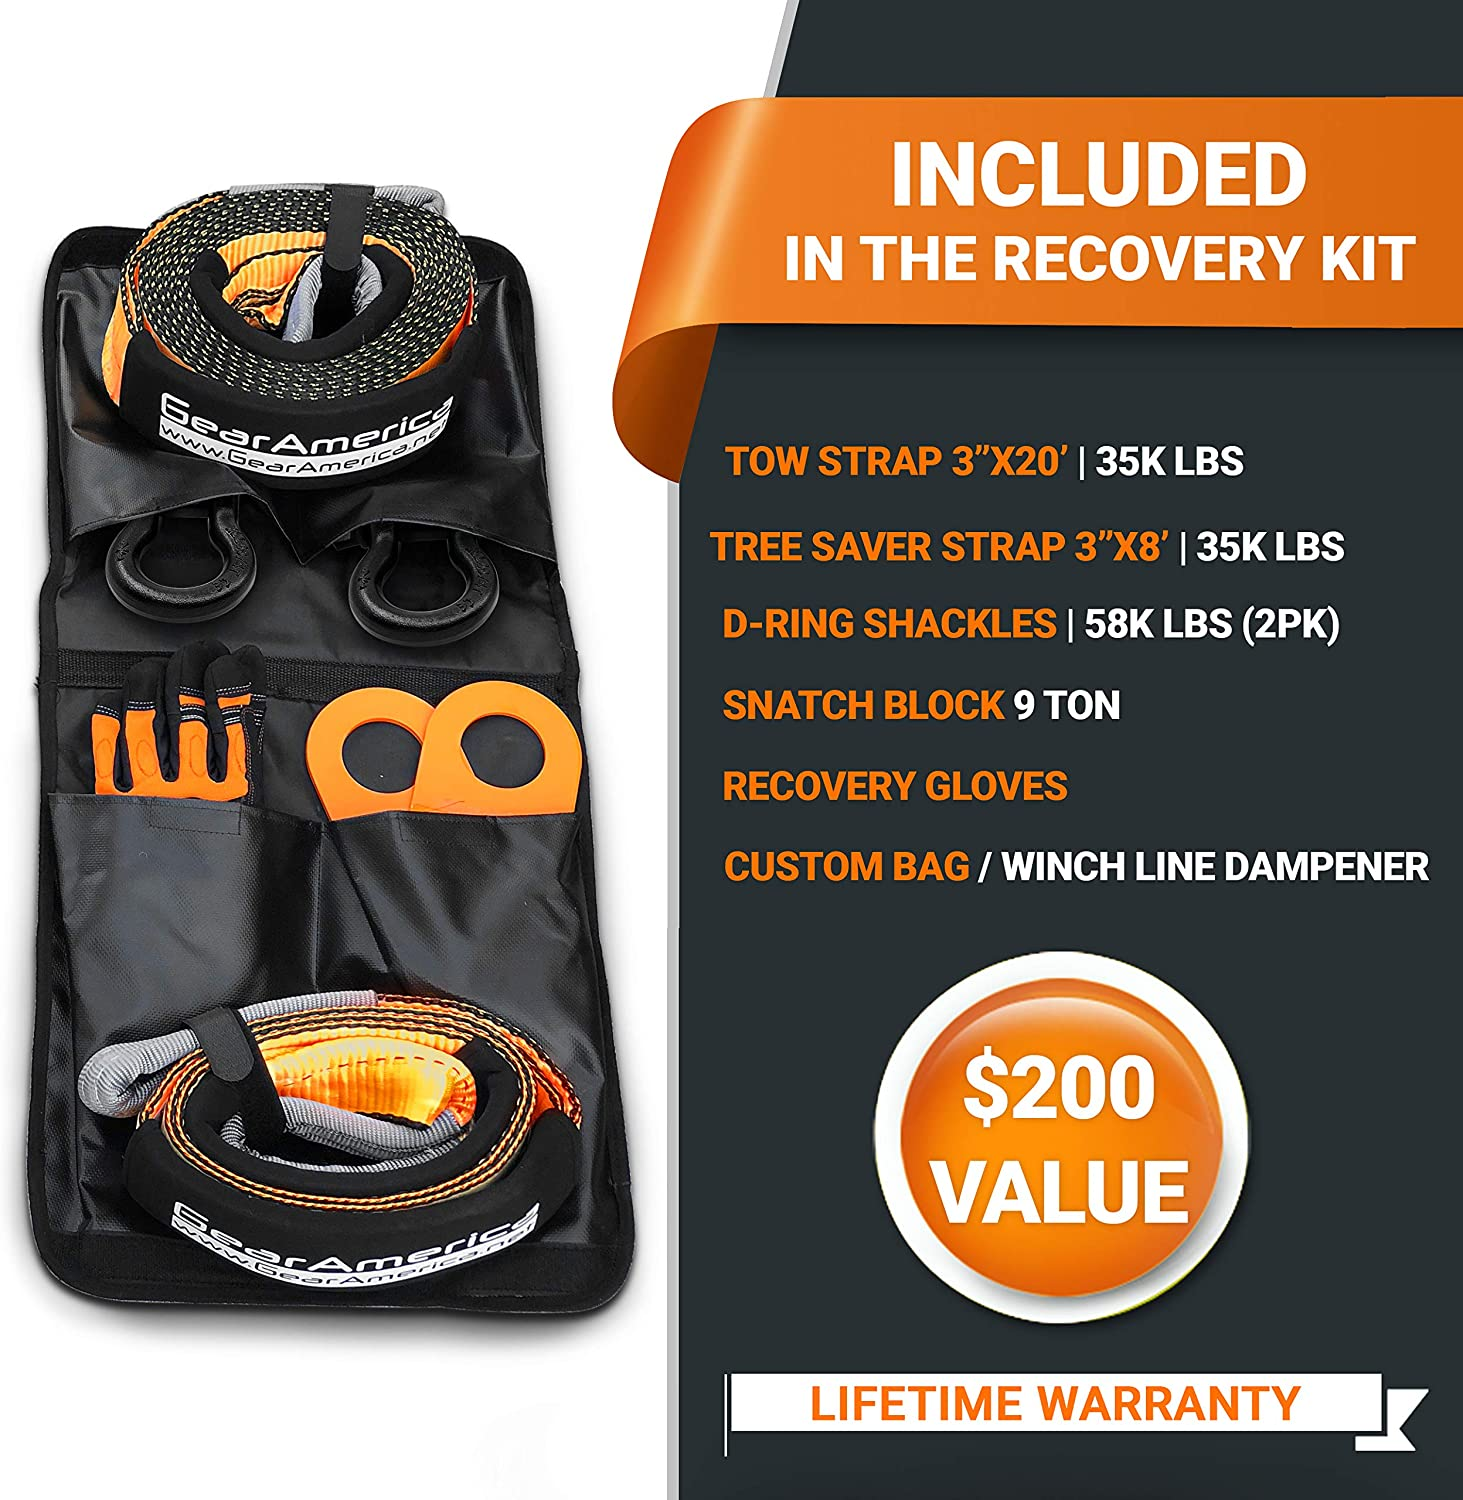 Autofonder 11Pcs Recovery Gear Offroad 4x4 kit-3 Pk Snatch Straps+2 D-Shackles+Snatch Block+Folding Survival Shovel+Tire Deflator Tow Strap Recovery Set Gear Bag Leather Gloves+Winch Dampener